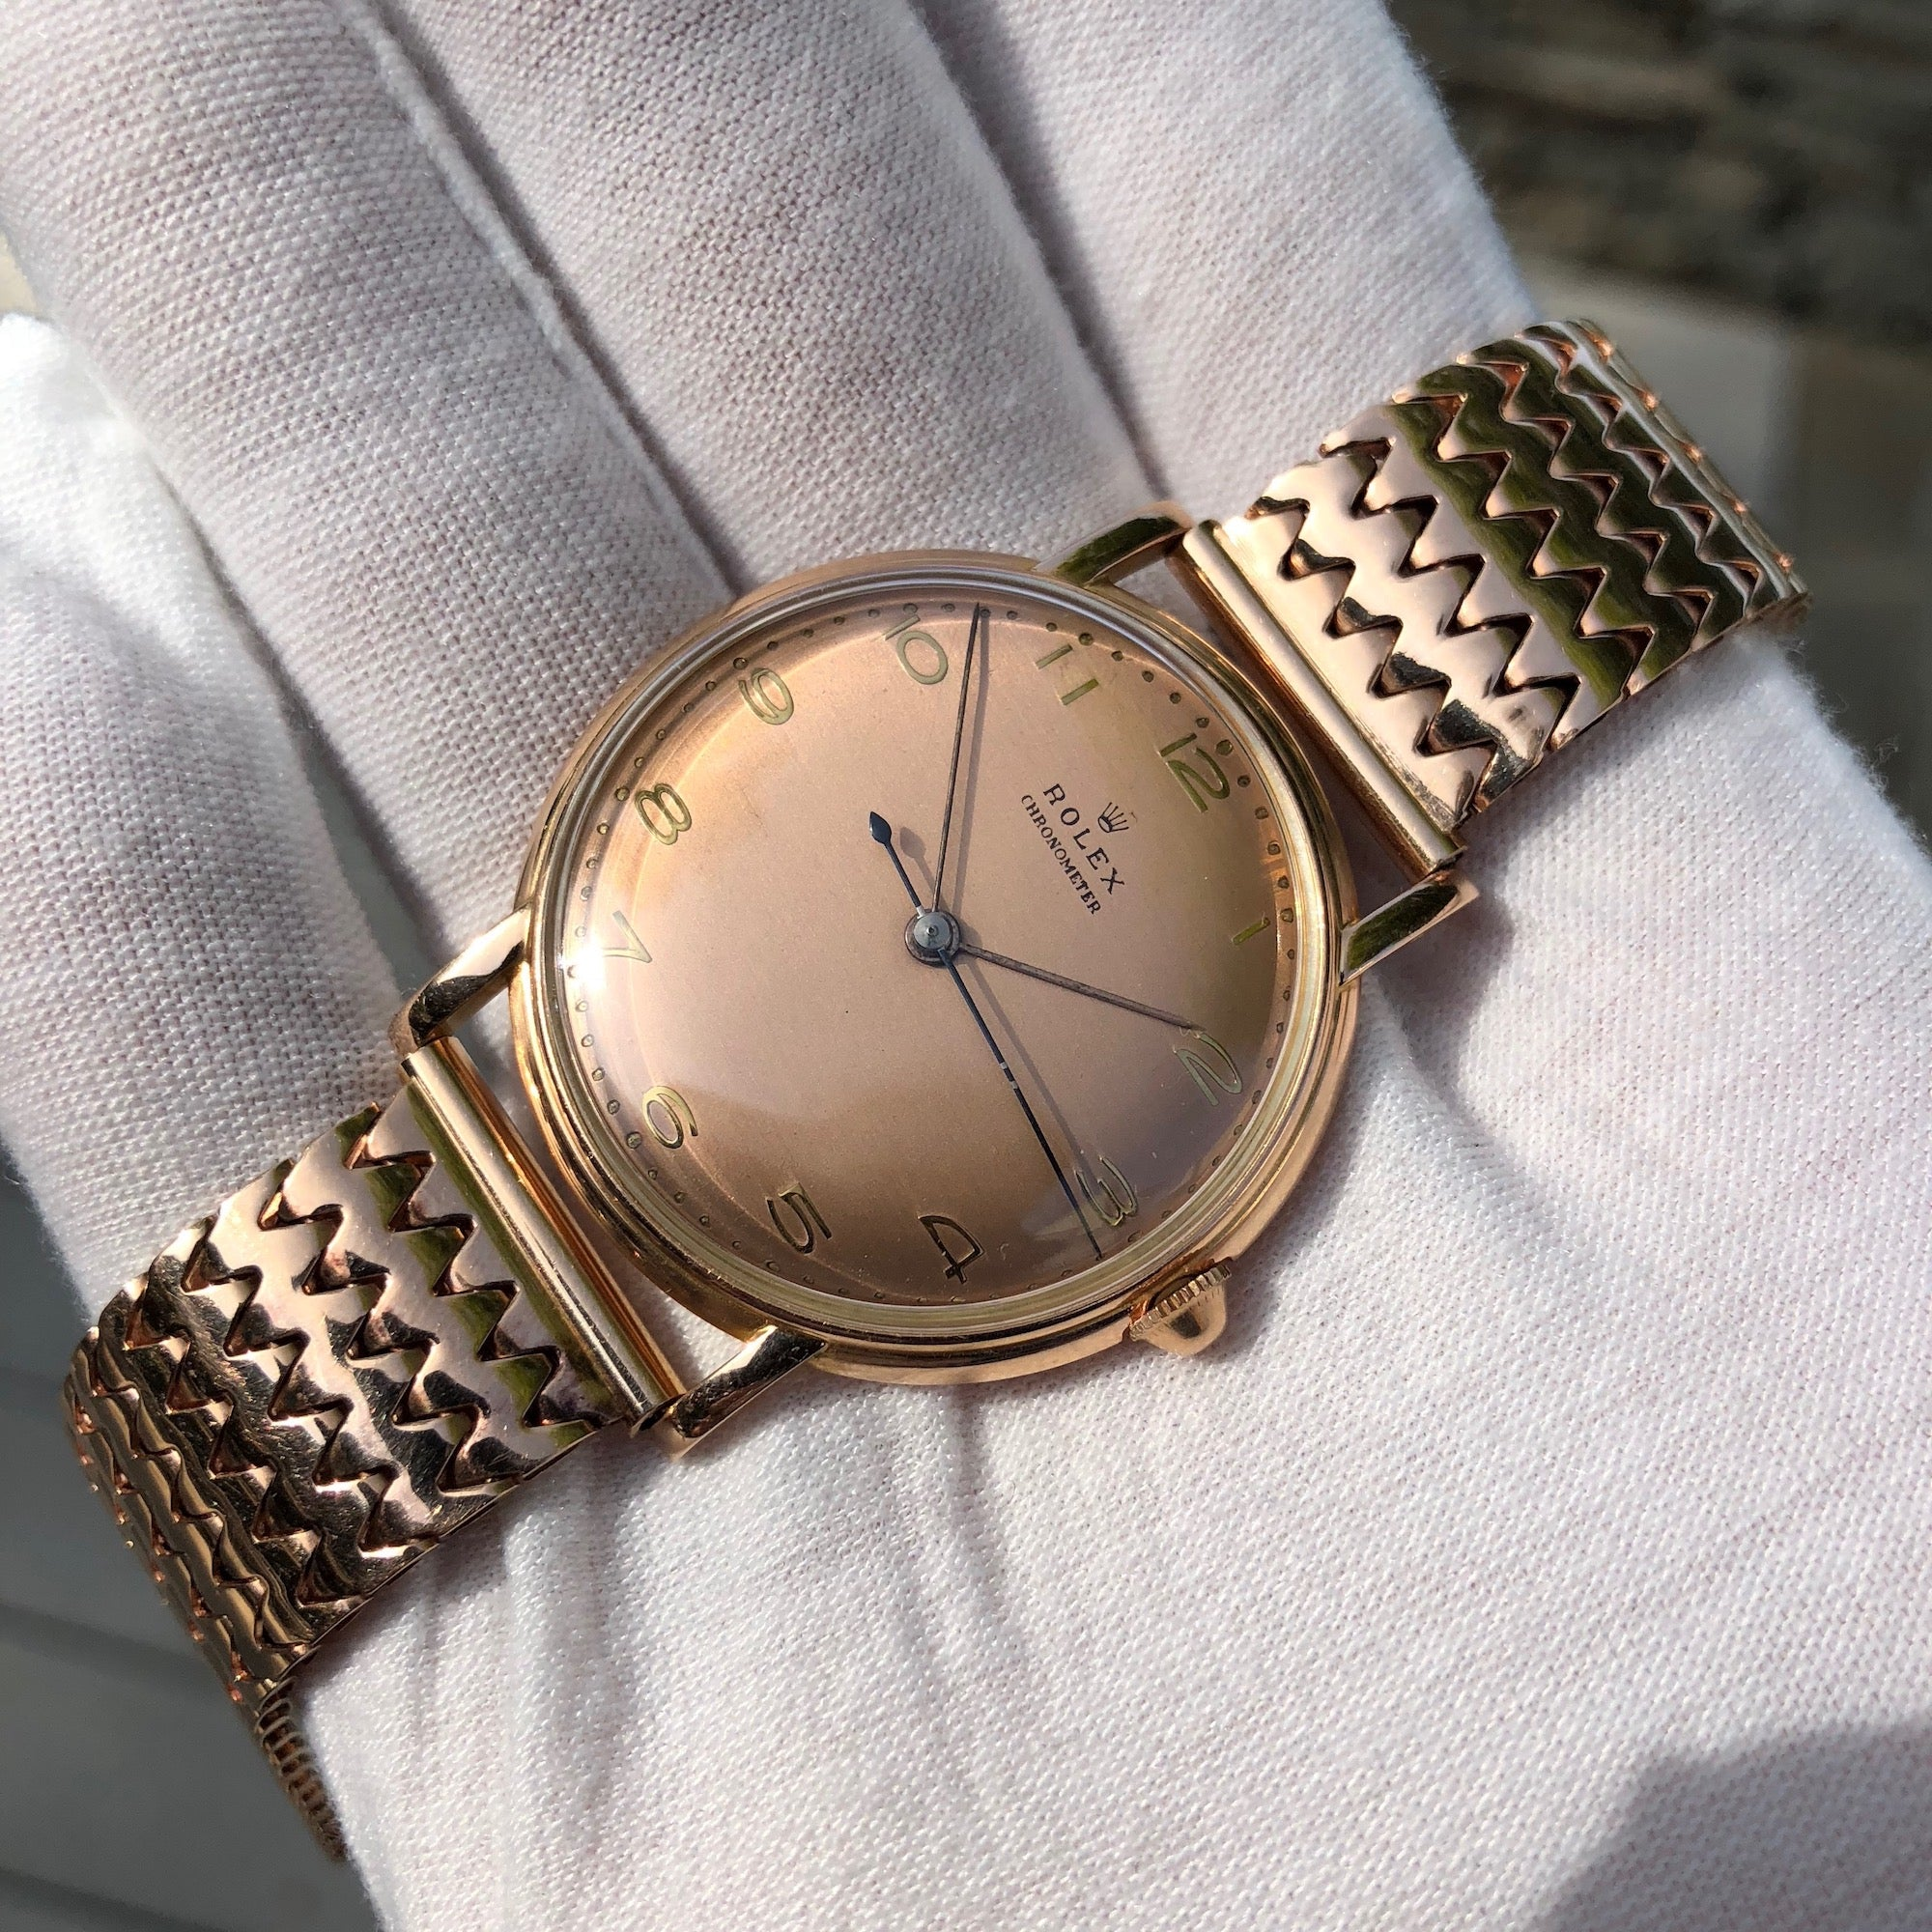 Vintage Rolex 4222 Chronometer 14K Rose Gold Manual 35mm Dress Wristwatch Circa 1955 - Hashtag Watch Company